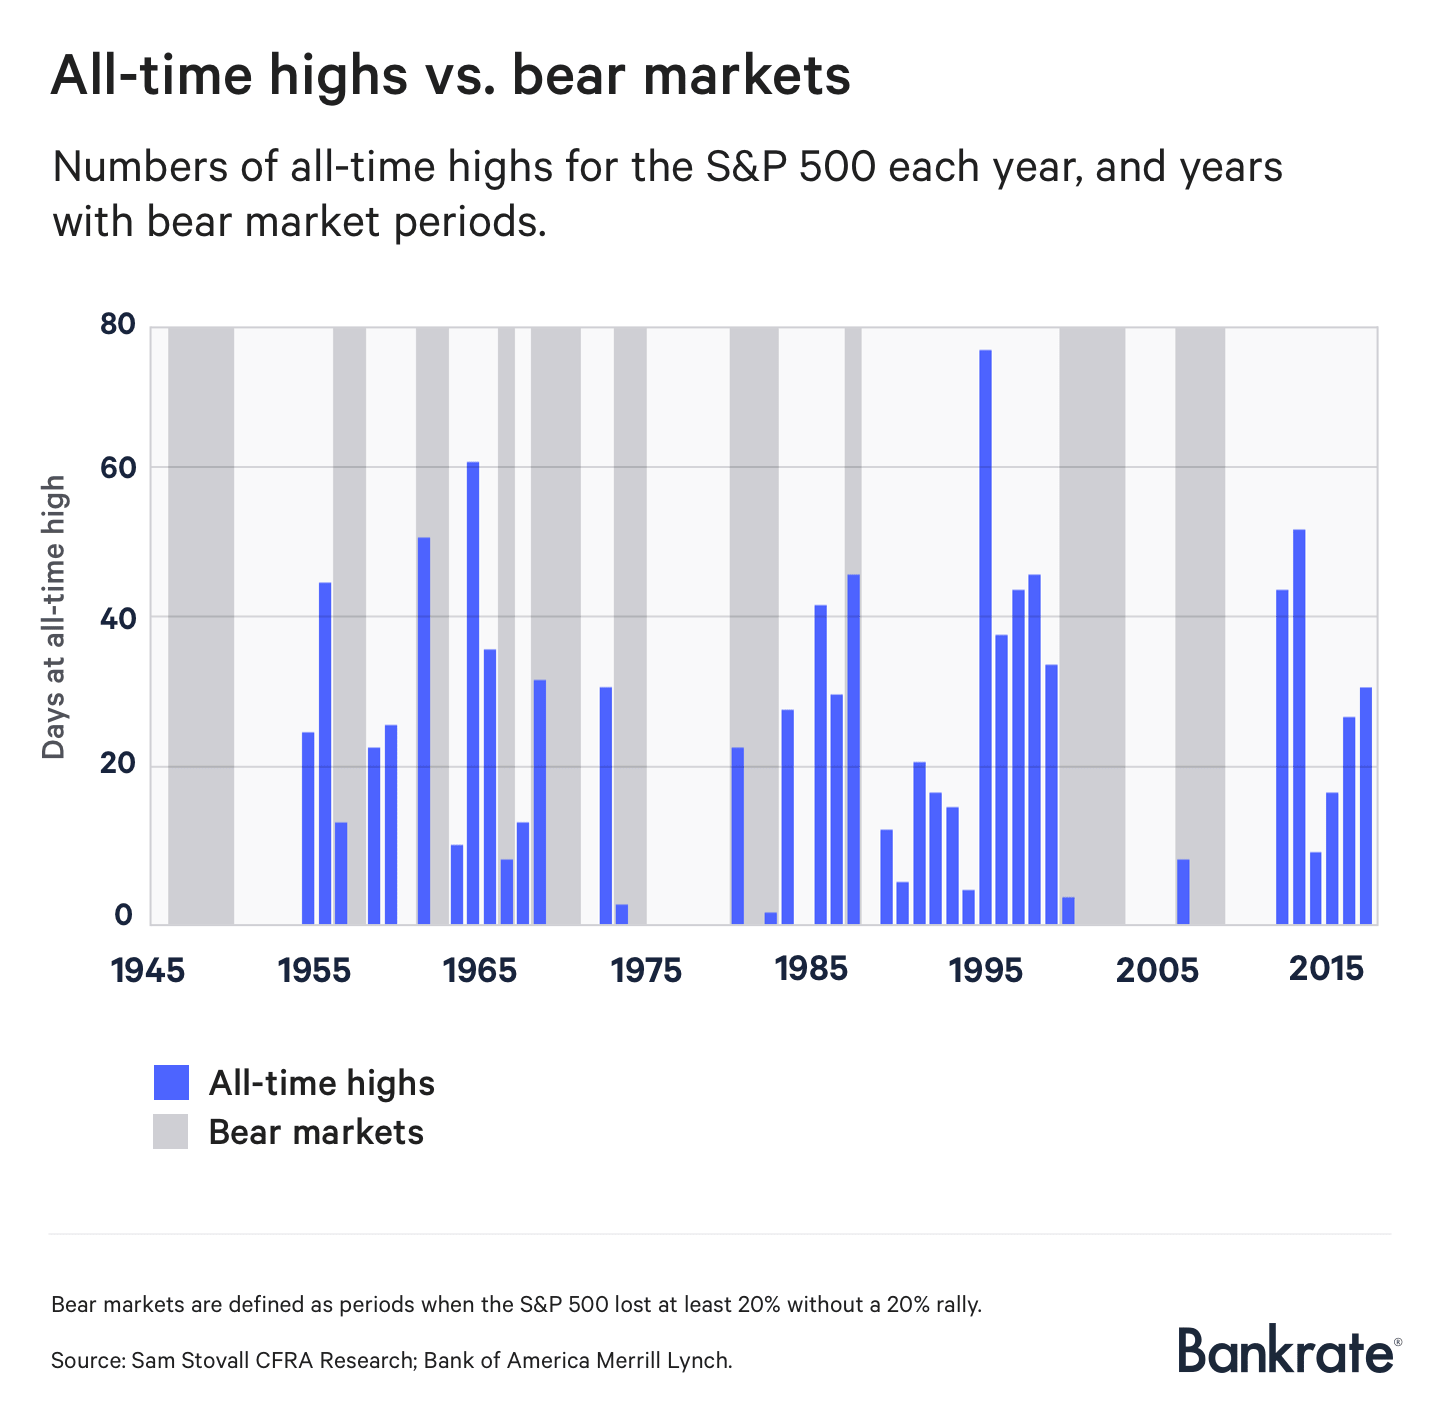 All-time highs vs. bear markets